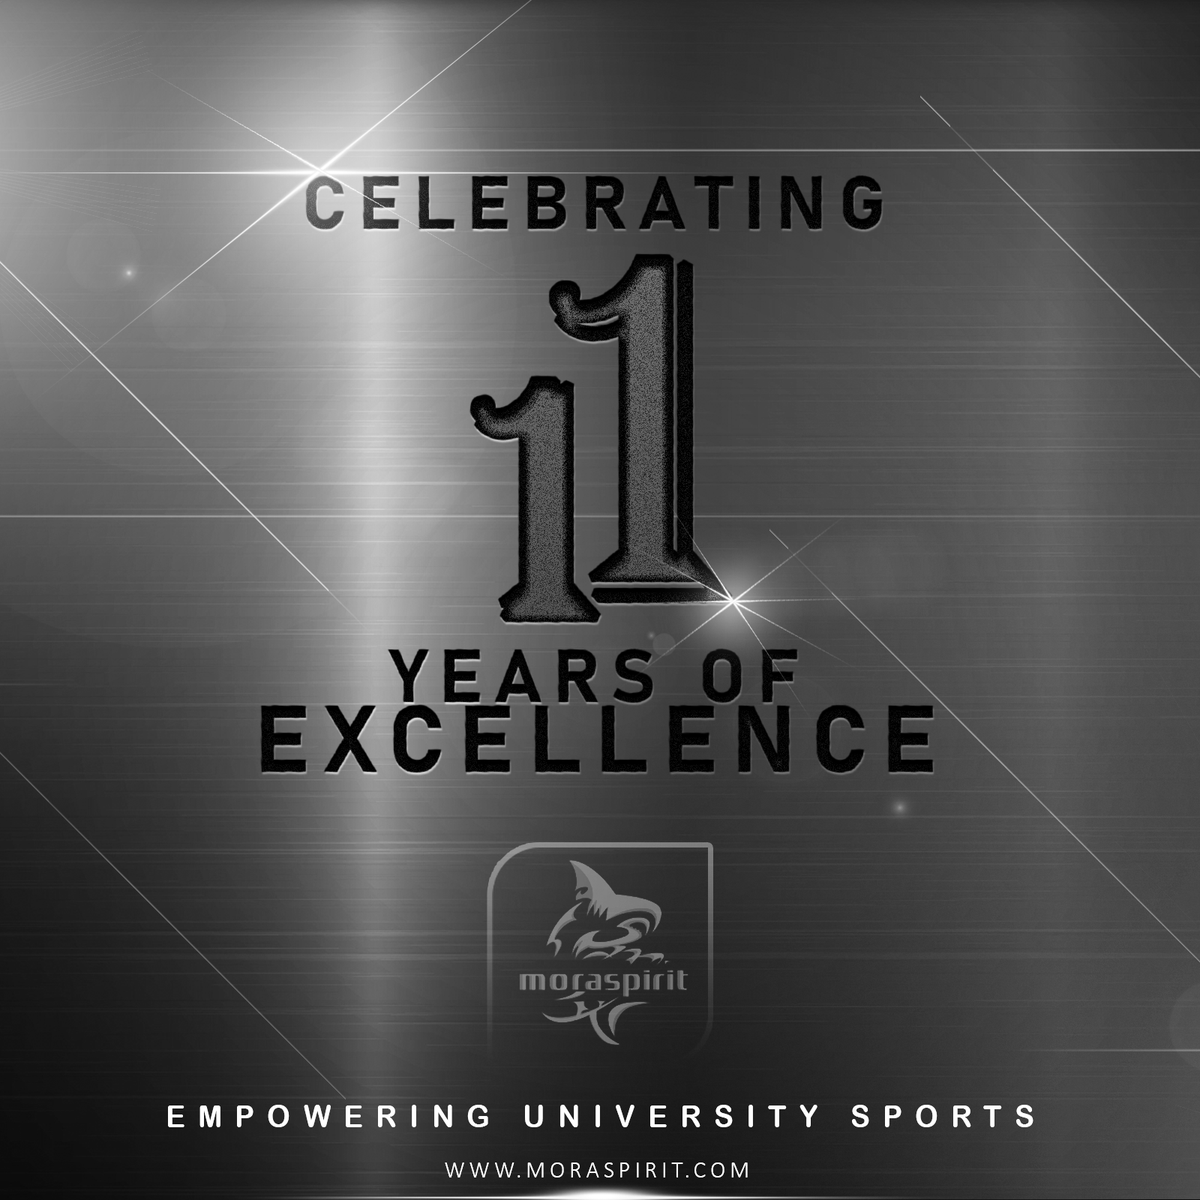 Moraspirit has worked with the aim of  uplifting the university sports to the highest of standards while creating  intelligent and well rounded university undergraduates instilled with qualities and disciplines nurtured by sports for 11 years and there is far more way to go. https://t.co/ZaEXedFJD7